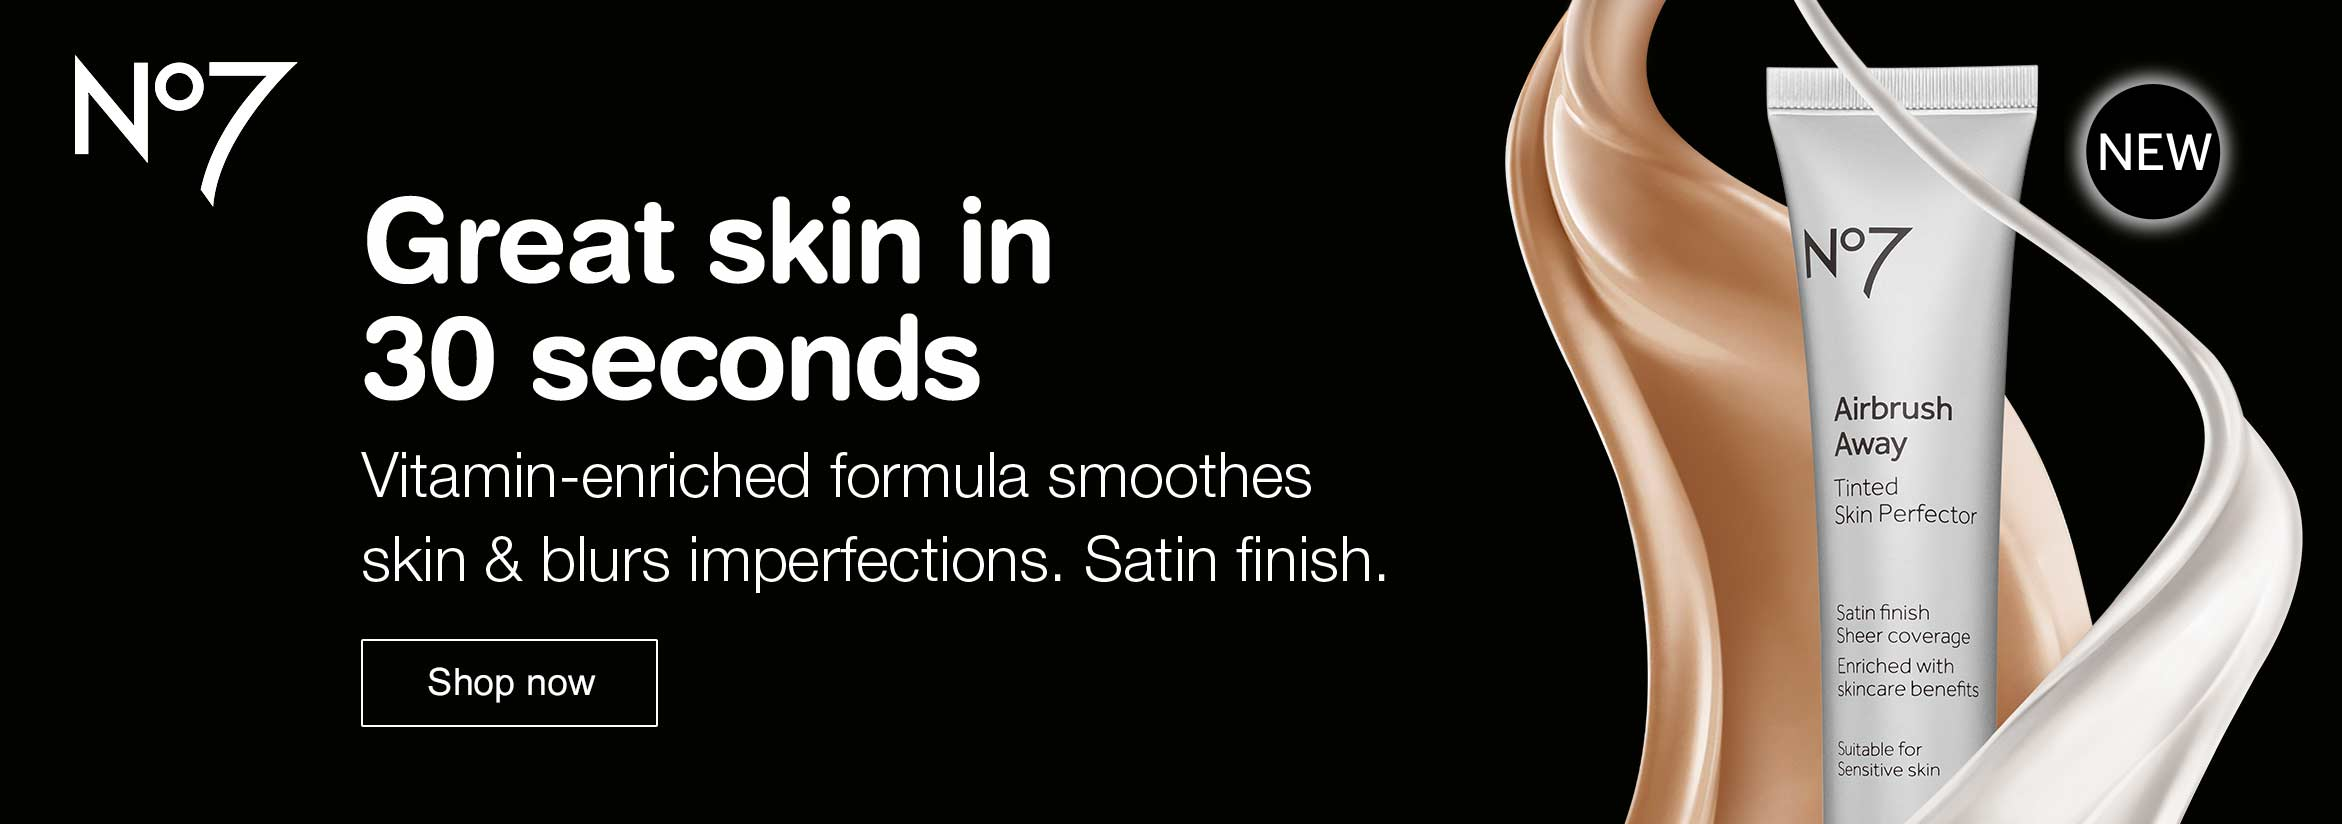 NEW No7. Great skin in 30 seconds. Vitamin-enriched formula smoothes skin & blurs imperfections. Satin finish. Shop now.